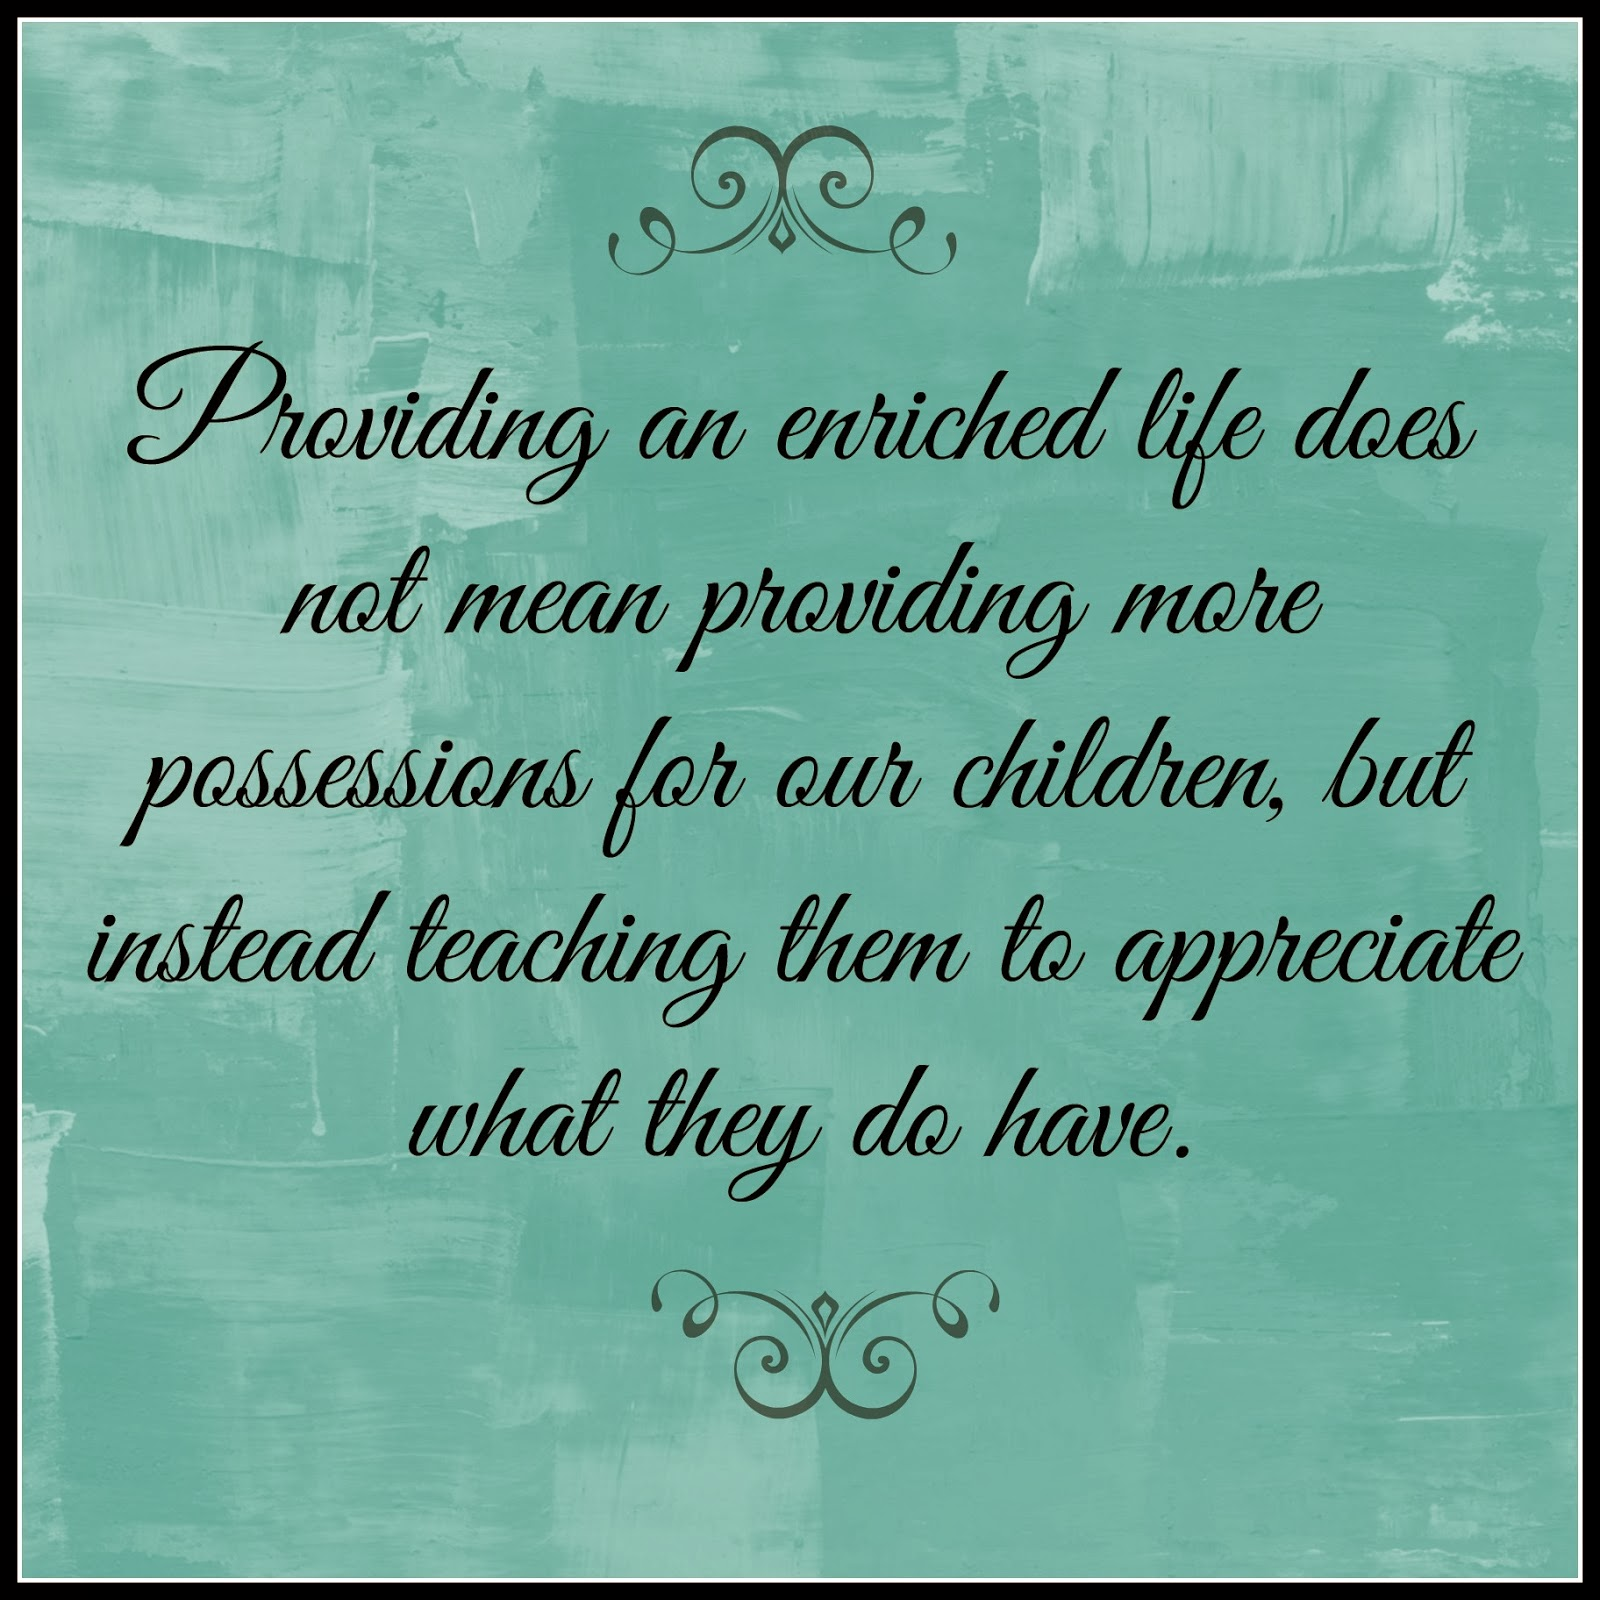 Providing an enriched life does not mean providing more possessions for our children, but instead teaching them to appreciate what they do have - Life Lessons from SoHeresMyLife.com